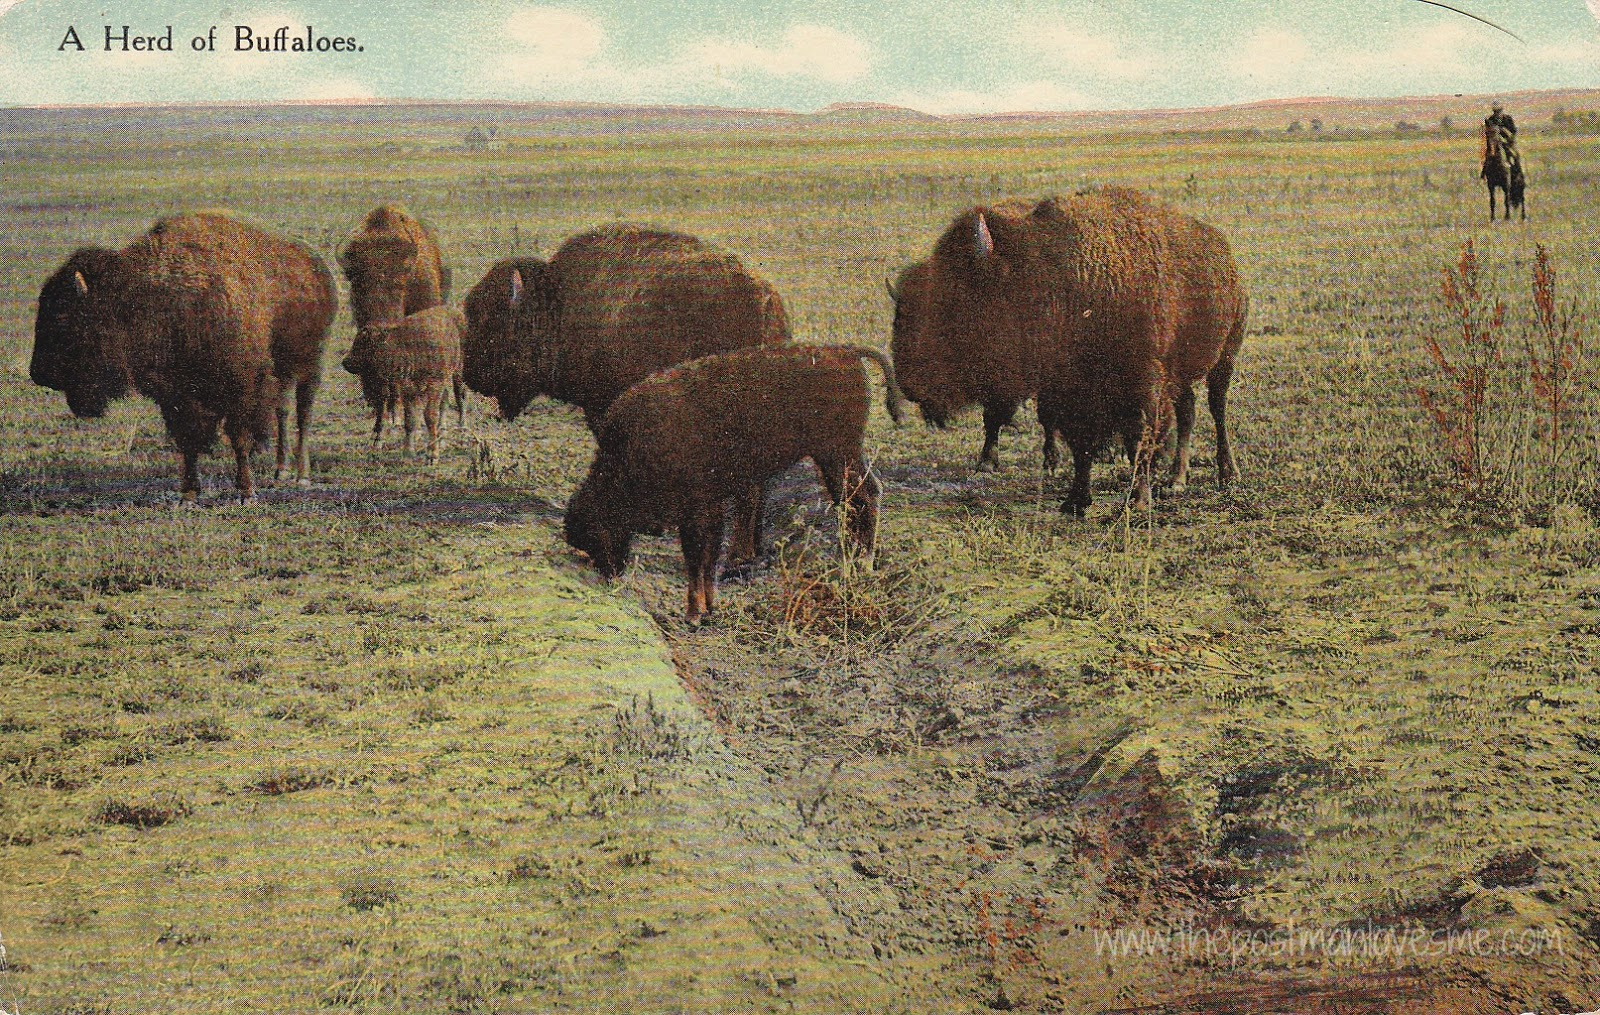 Vintage Postcard: A Herd of Buffaloes